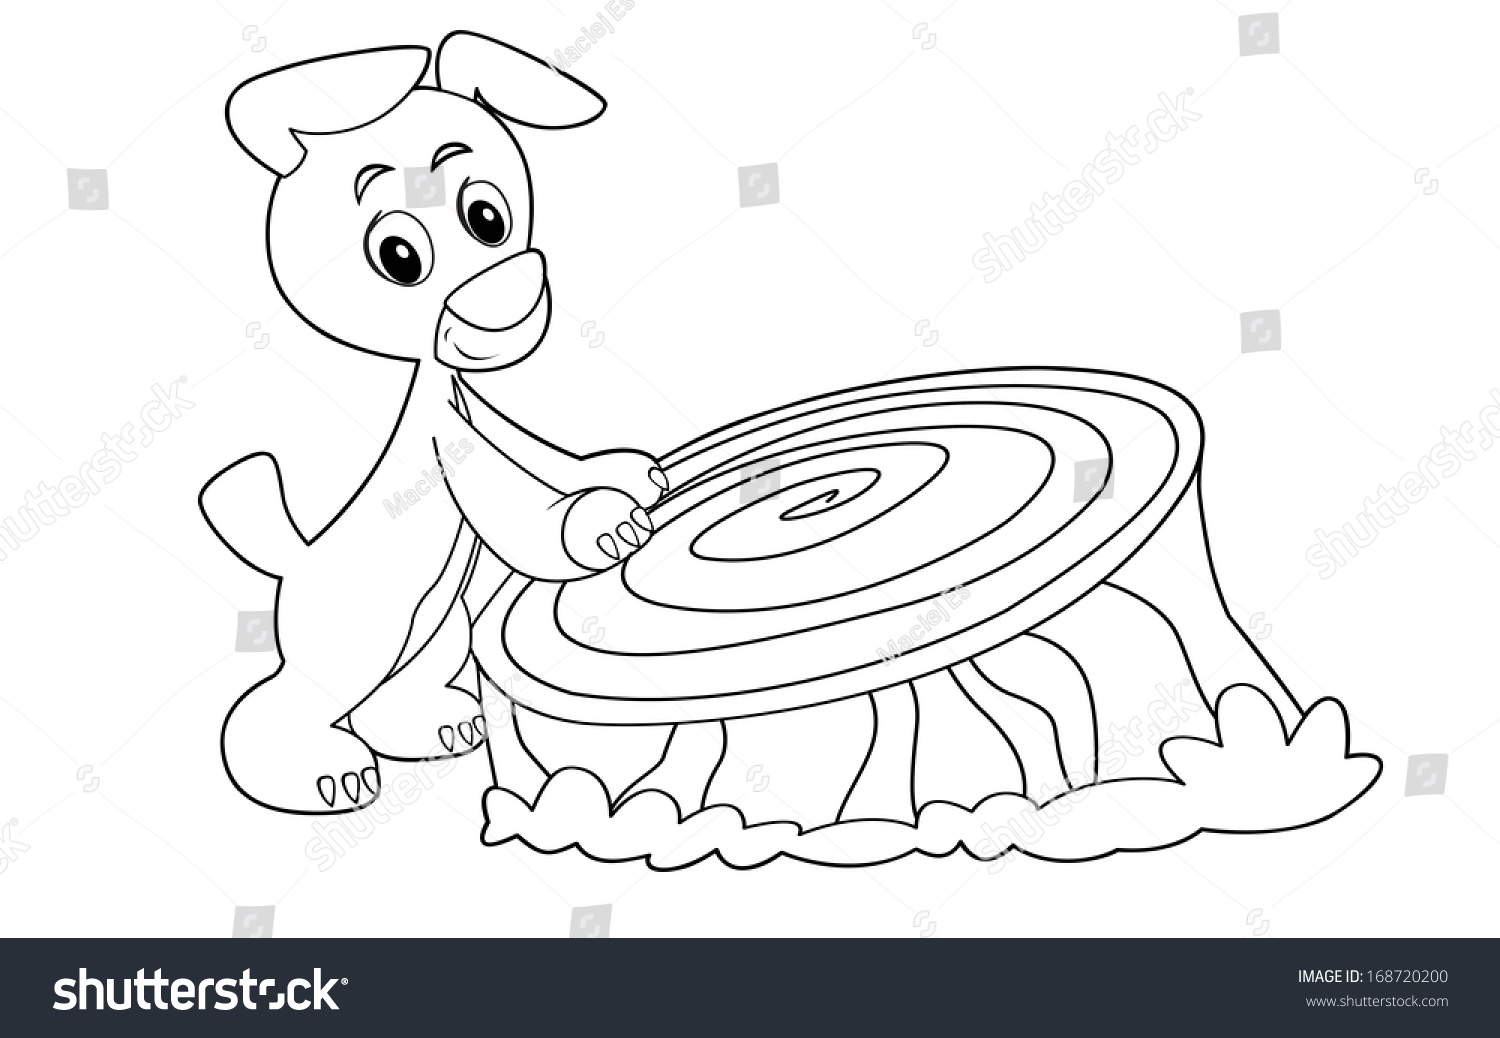 Coloring page - doggy having fun - illustration for the children ...